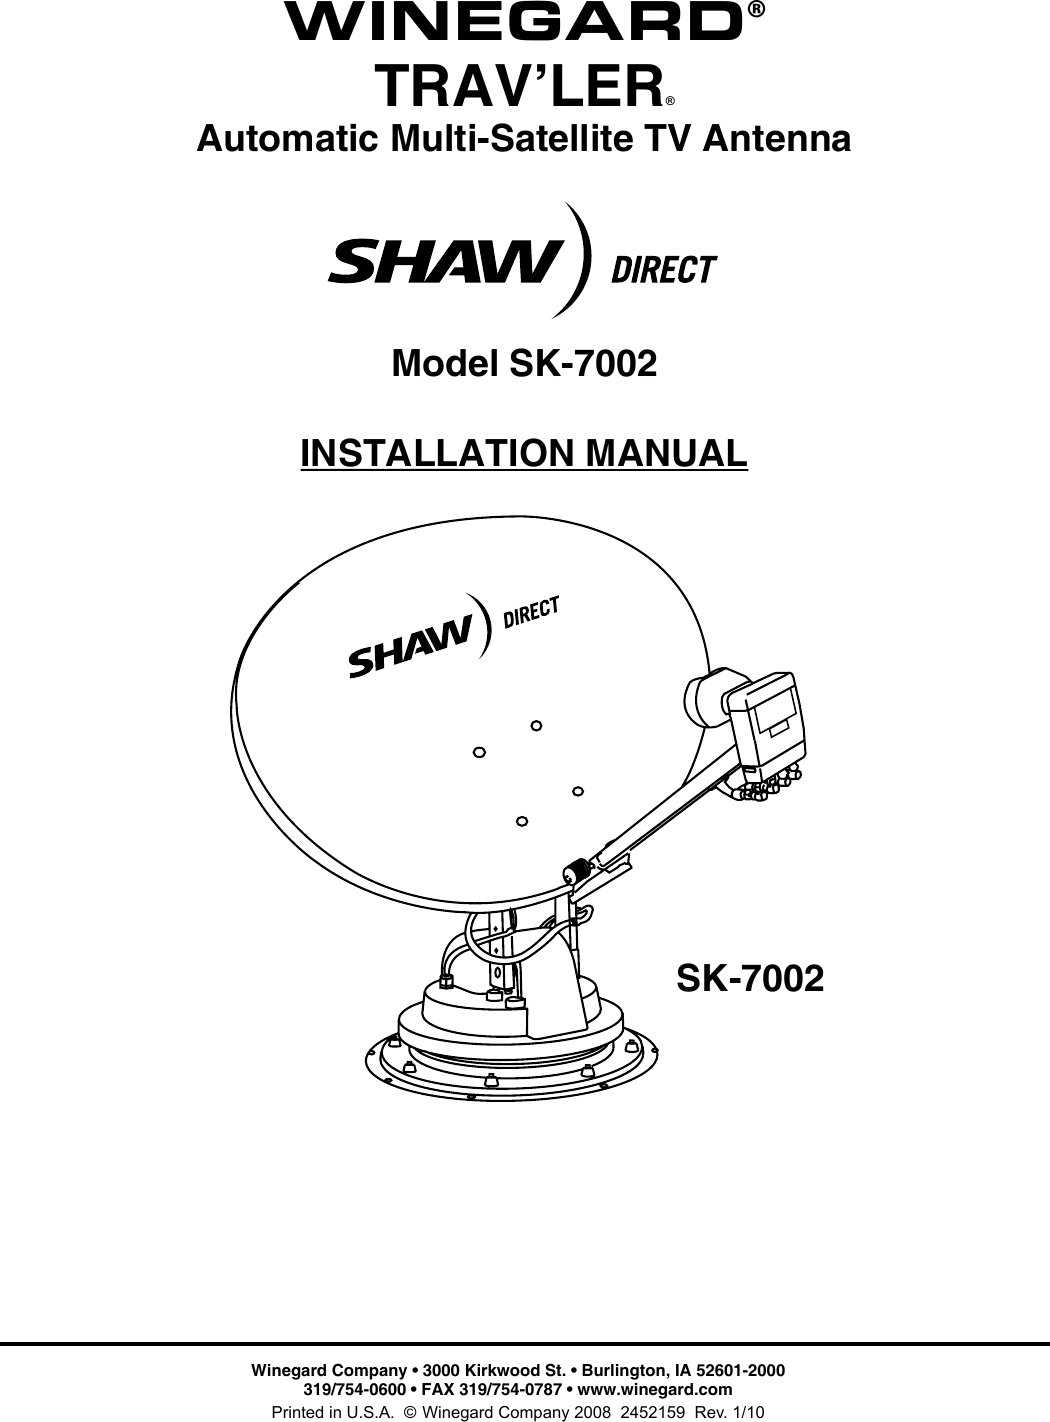 Winegard Satellite Tv System Sk 7002 Users Manual Rv Antenna Wiring Diagram Page 1 Of 12